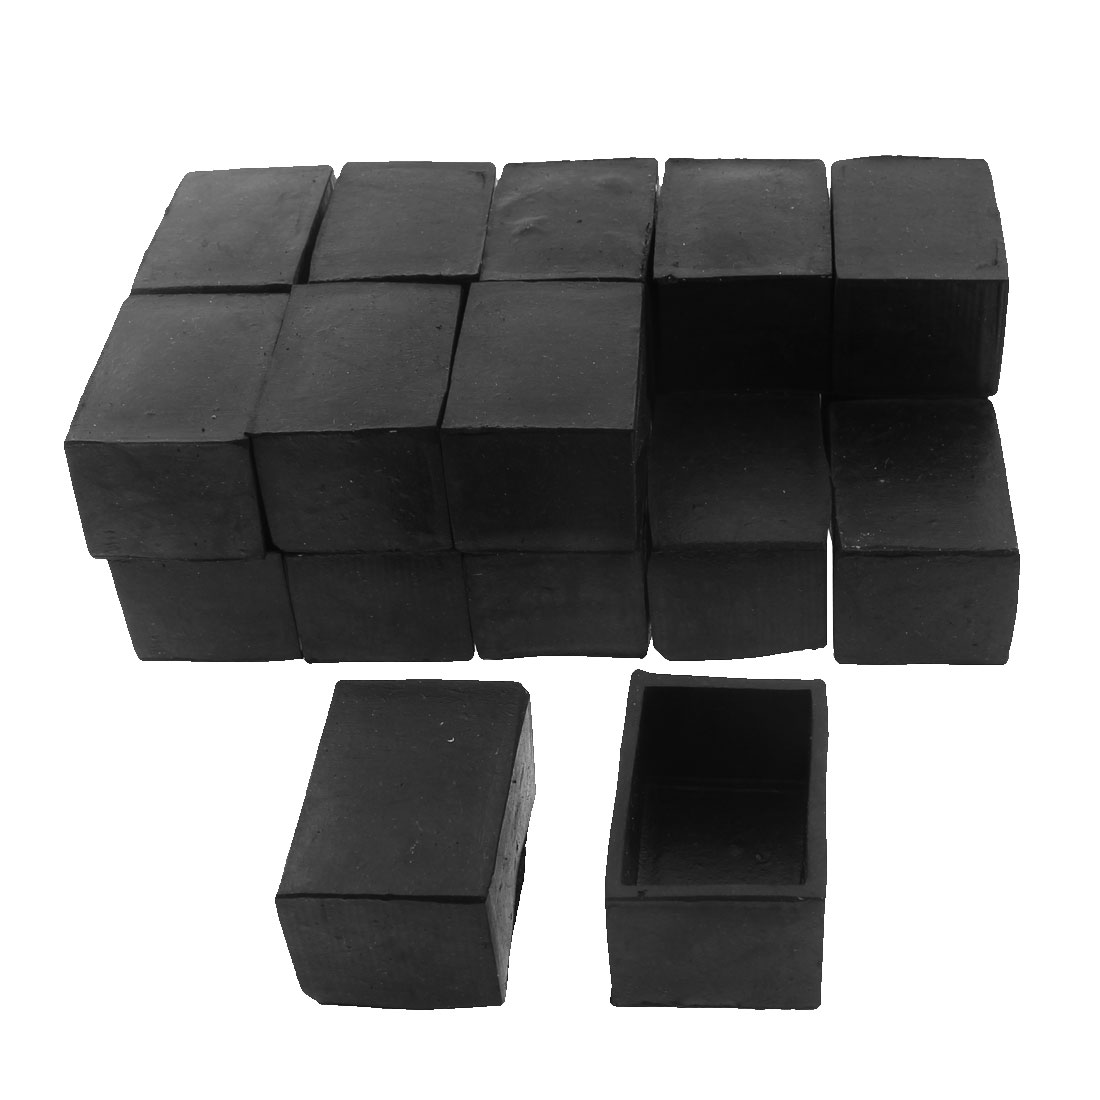 40mm x 25mm Rectangle Shape Furniture Table Chair Foot Leg Rubber End Cap Cover Black 20pcs